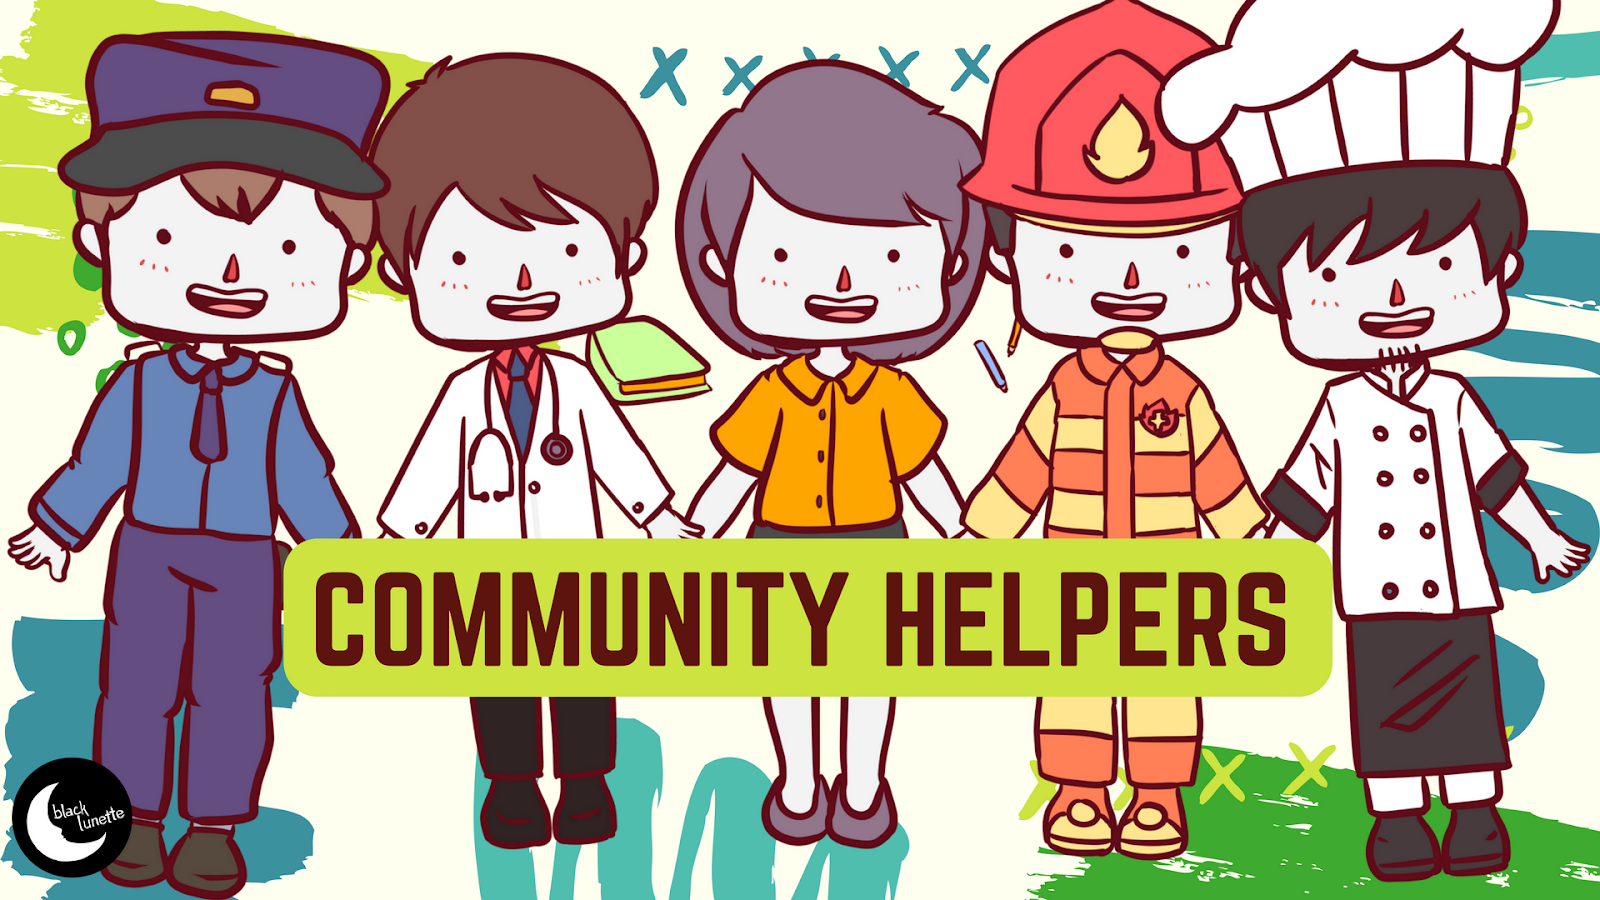 NINESAUR: COMMUNITY HELPERS CLIPART FREE DOWNLOAD.